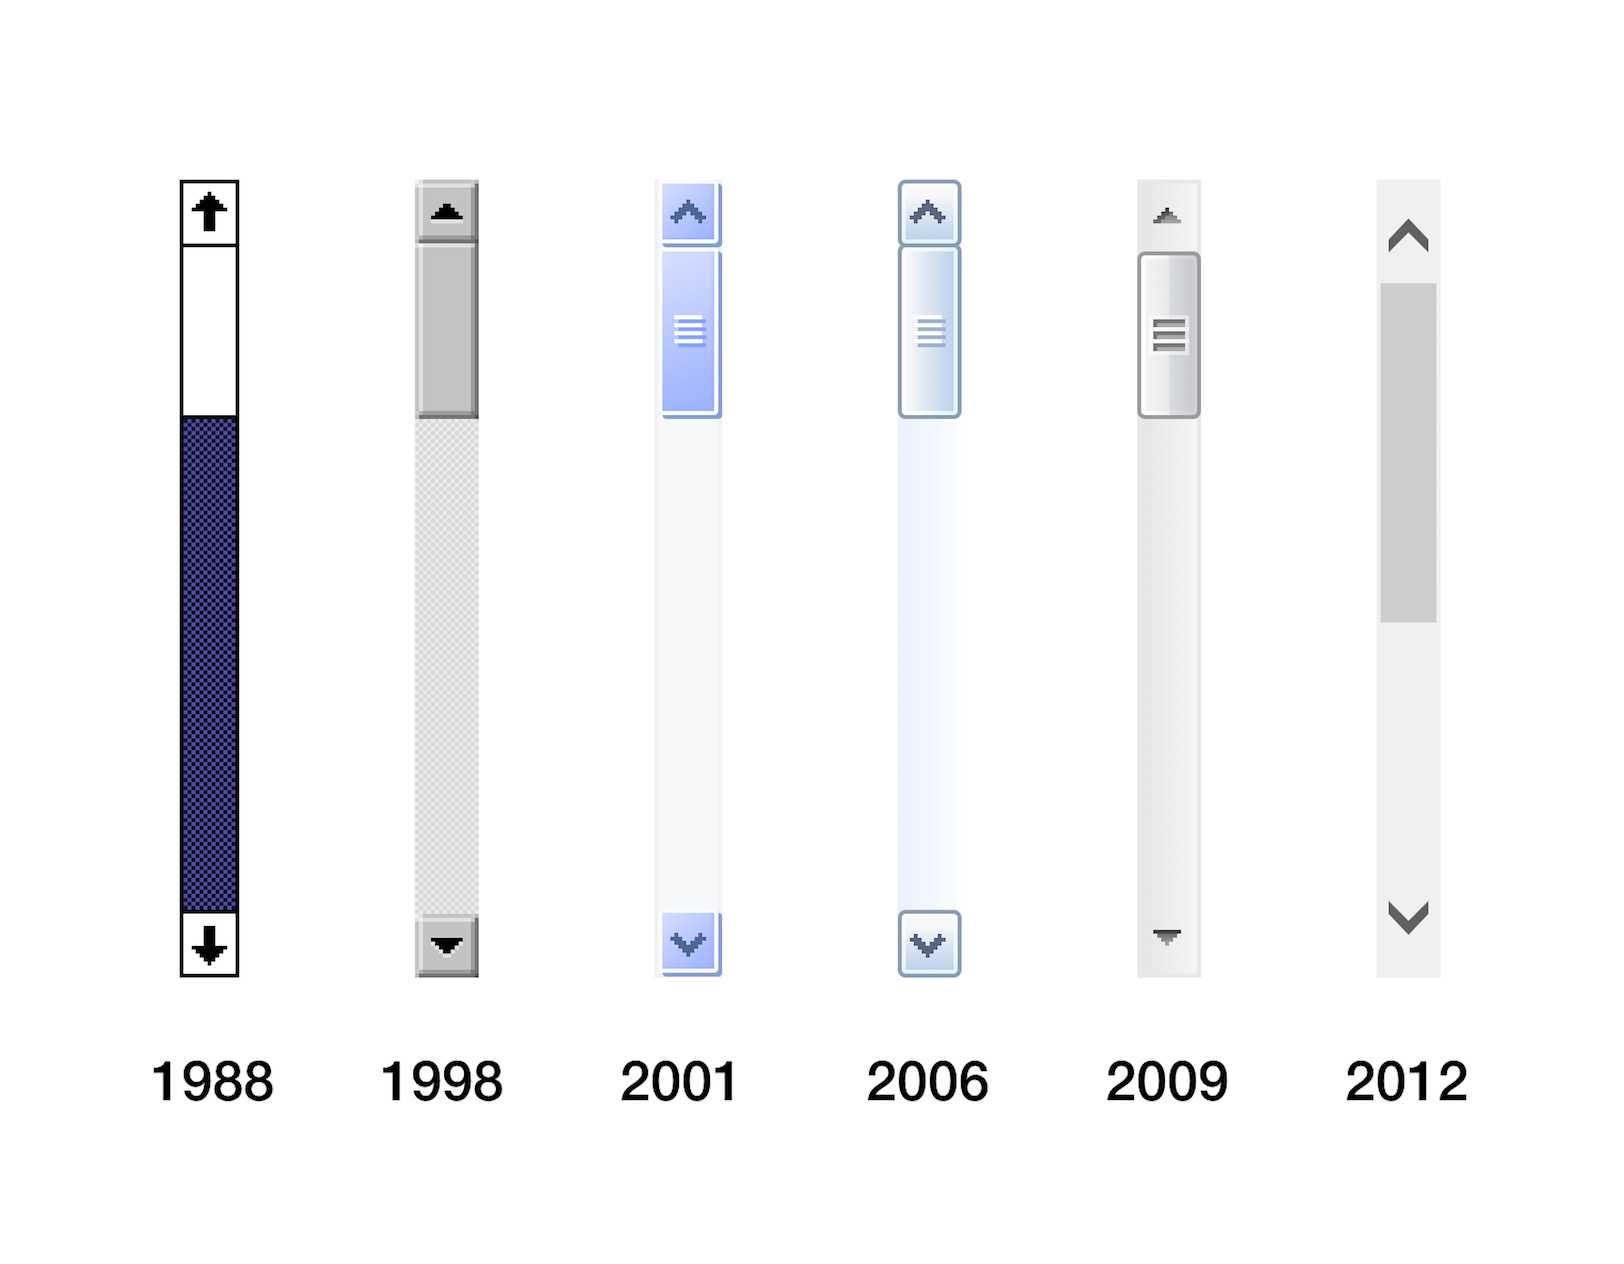 Design of Windows scrollbars over time